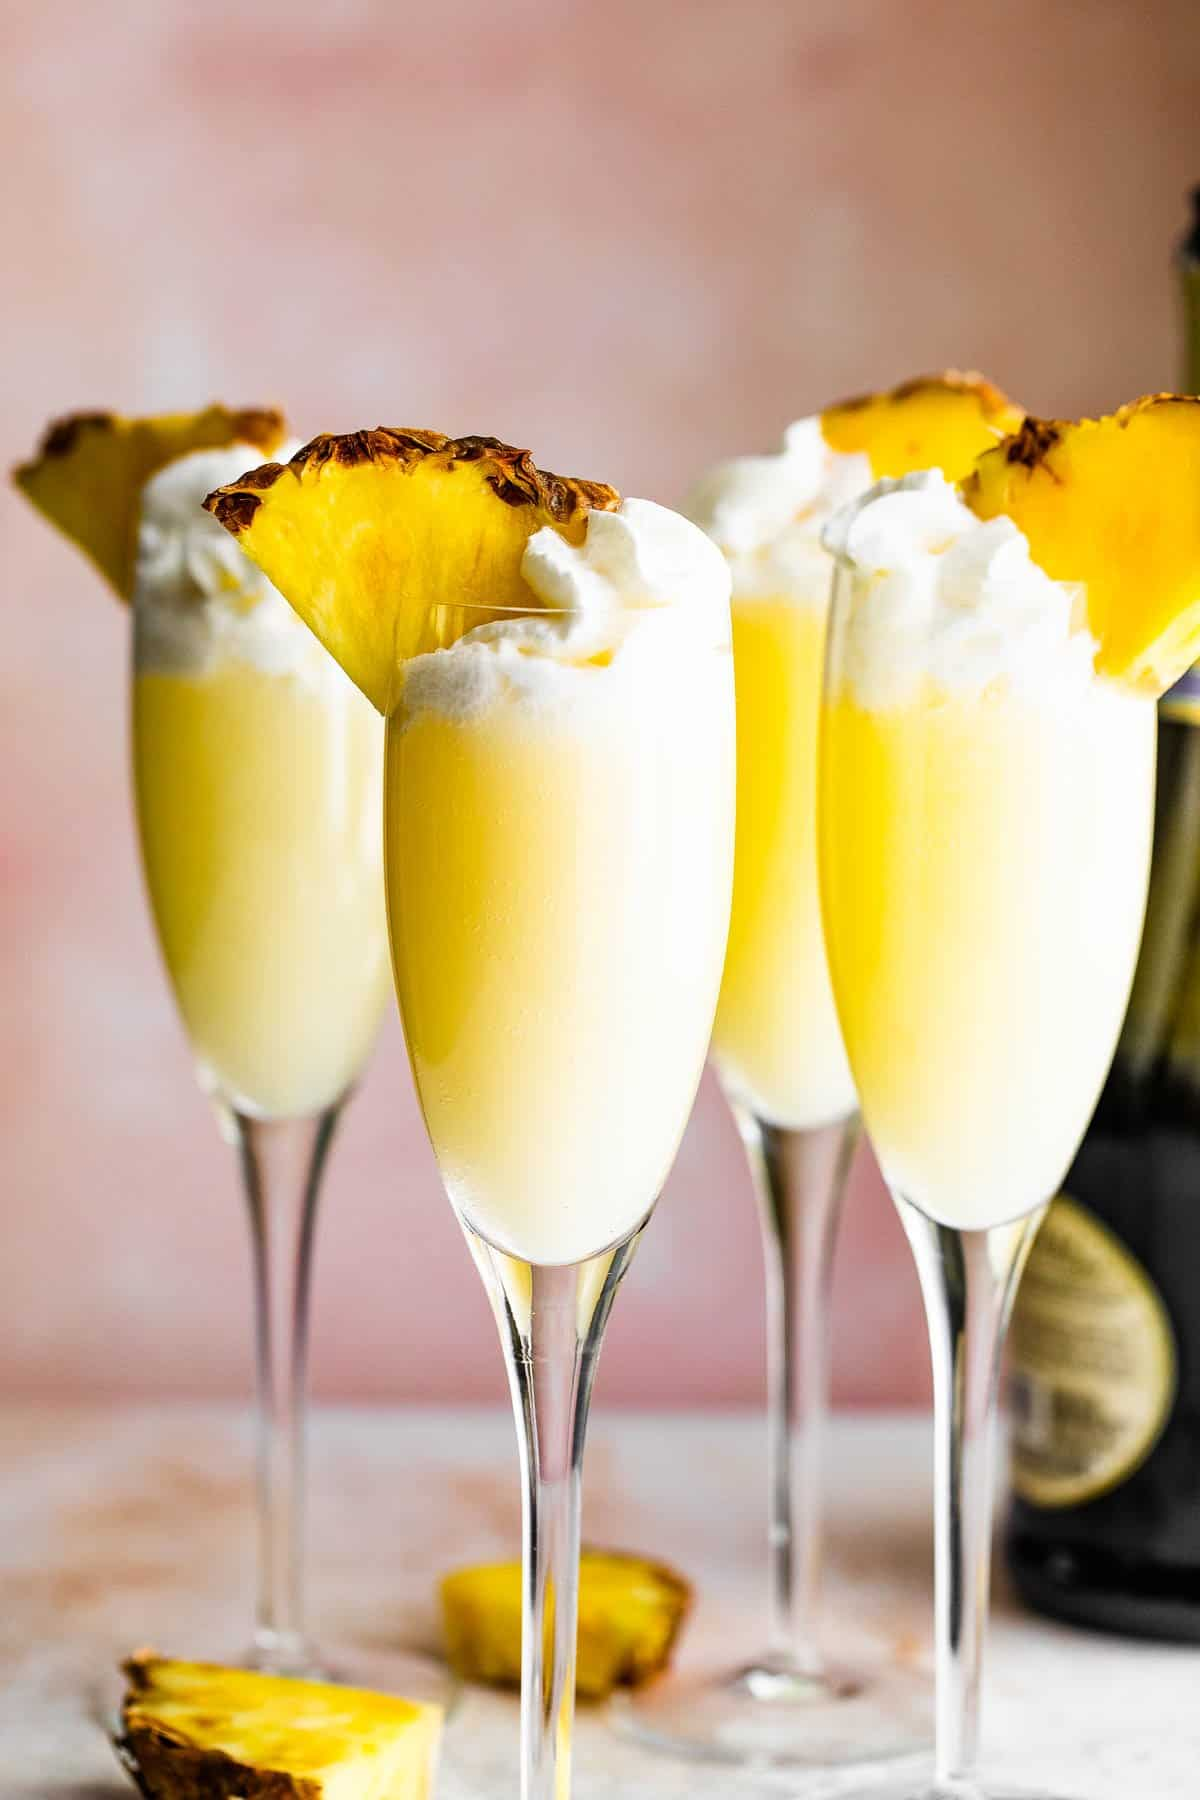 four champagne flutes filled with pineapple dole whip mimosas and topped with whipped cream and pineapple slices